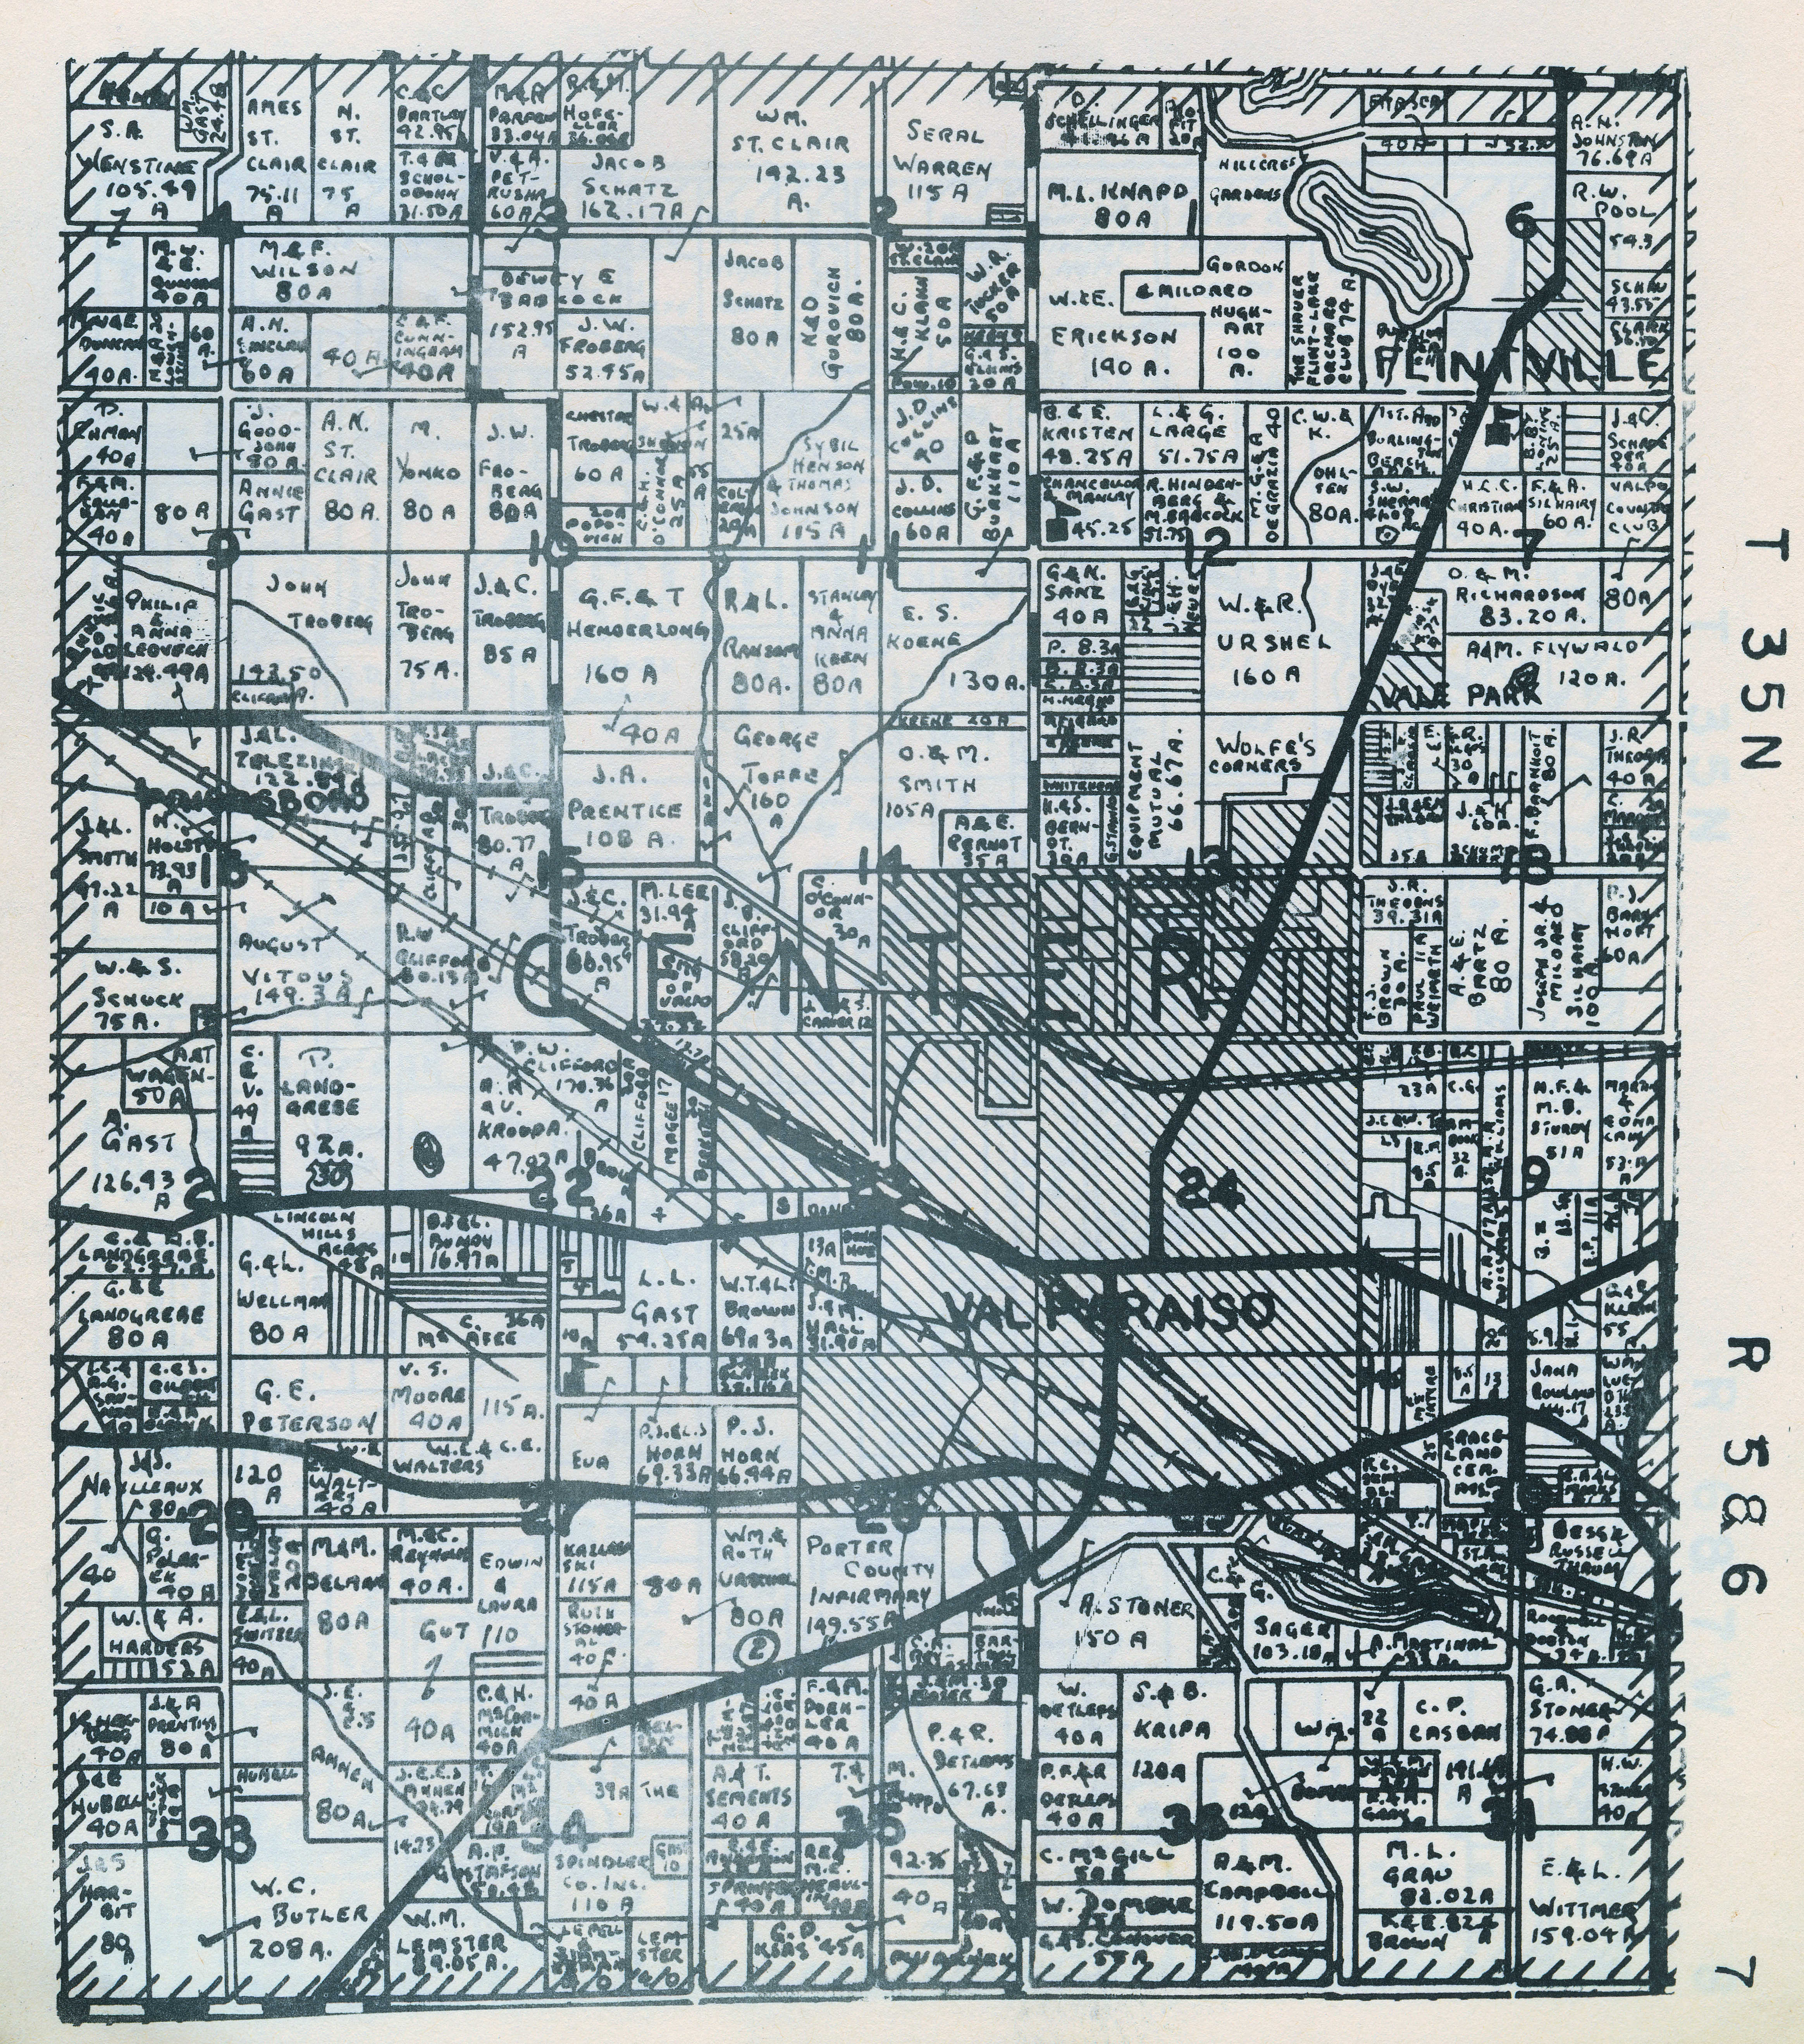 Porter County Indiana Genweb Township Plat Maps 1941